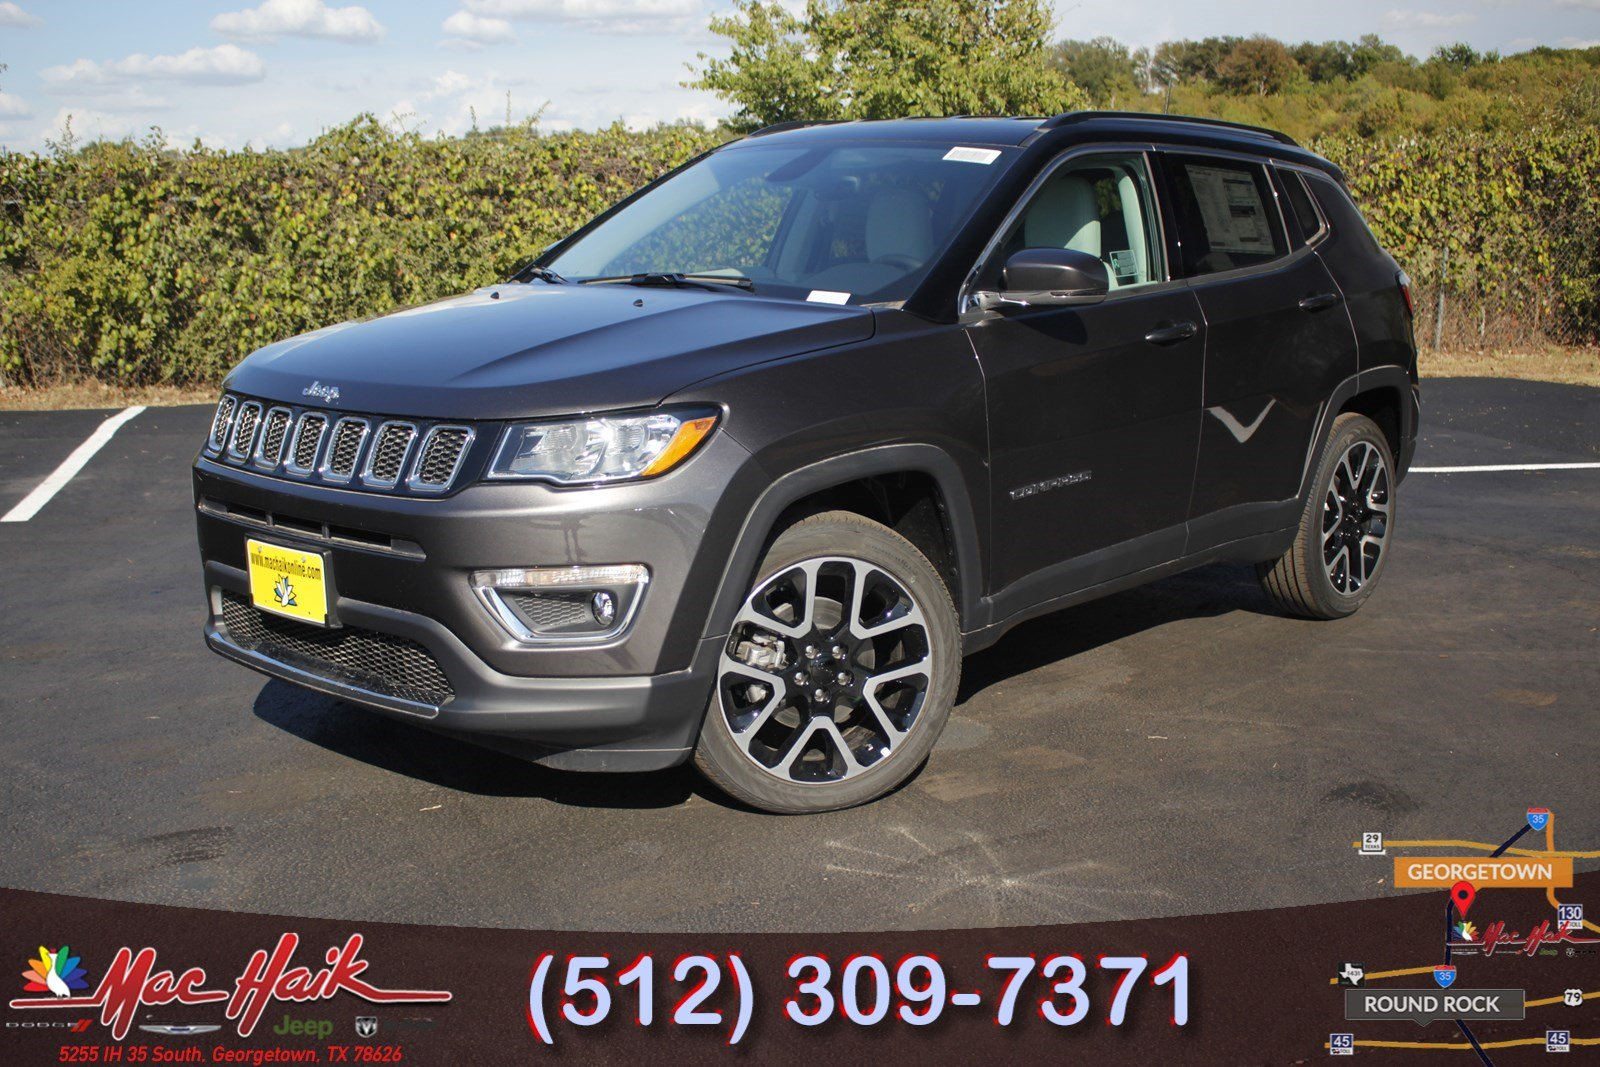 mac haik dodge jeep georgetown